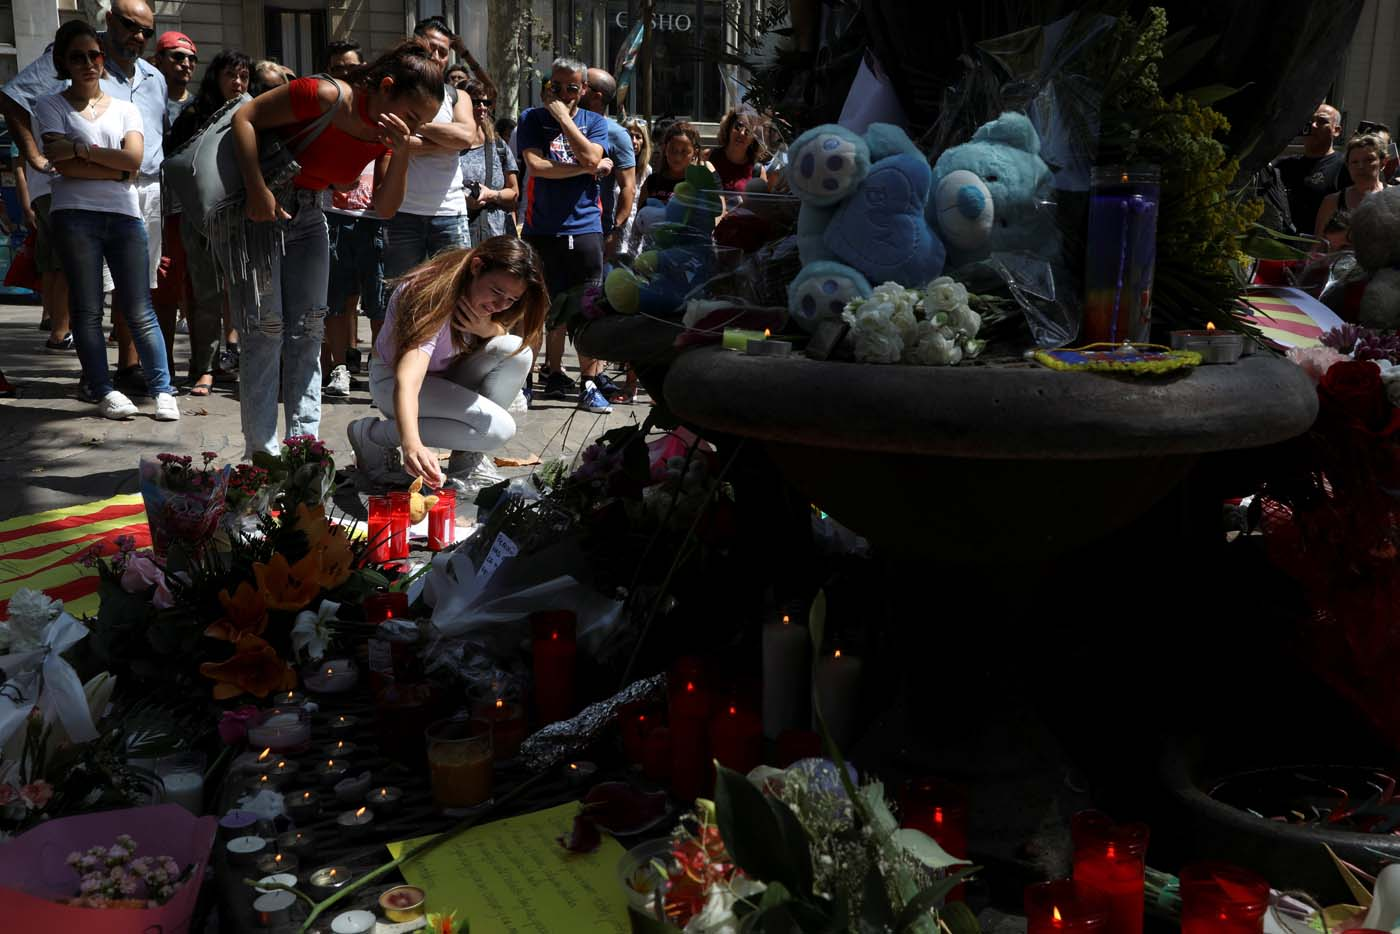 People react at an impromptu memorial a day after a van crashed into pedestrians at Las Ramblas in Barcelona, Spain August 18, 2017. REUTERS/Susana Vera